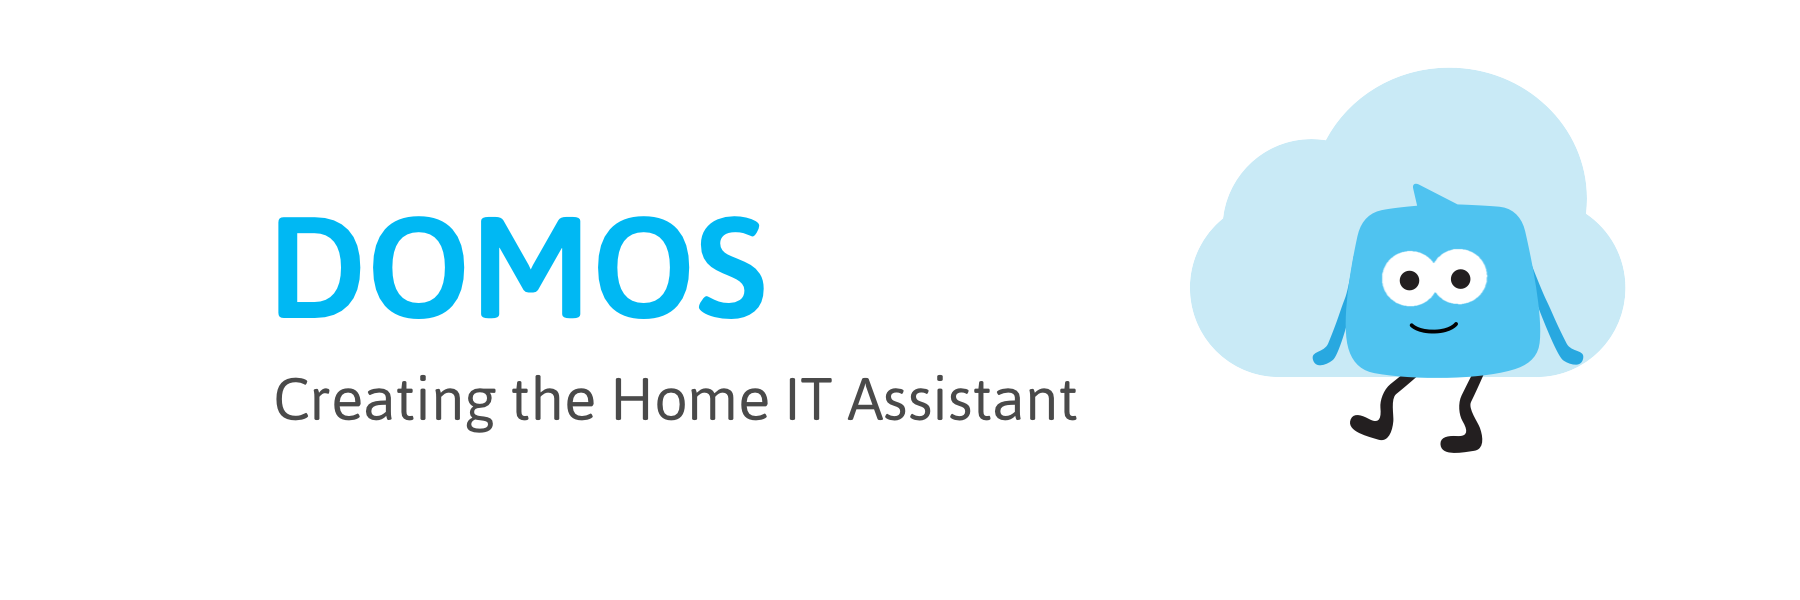 Domos—Creating the Home IT Assistant